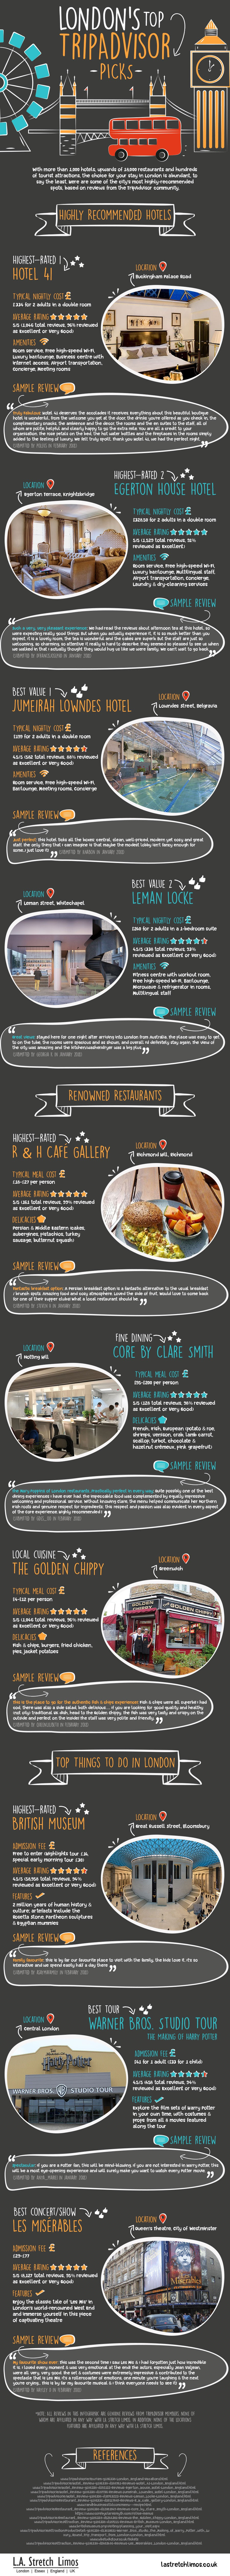 London's Best restaurants, Hotels And Attractions #infographic